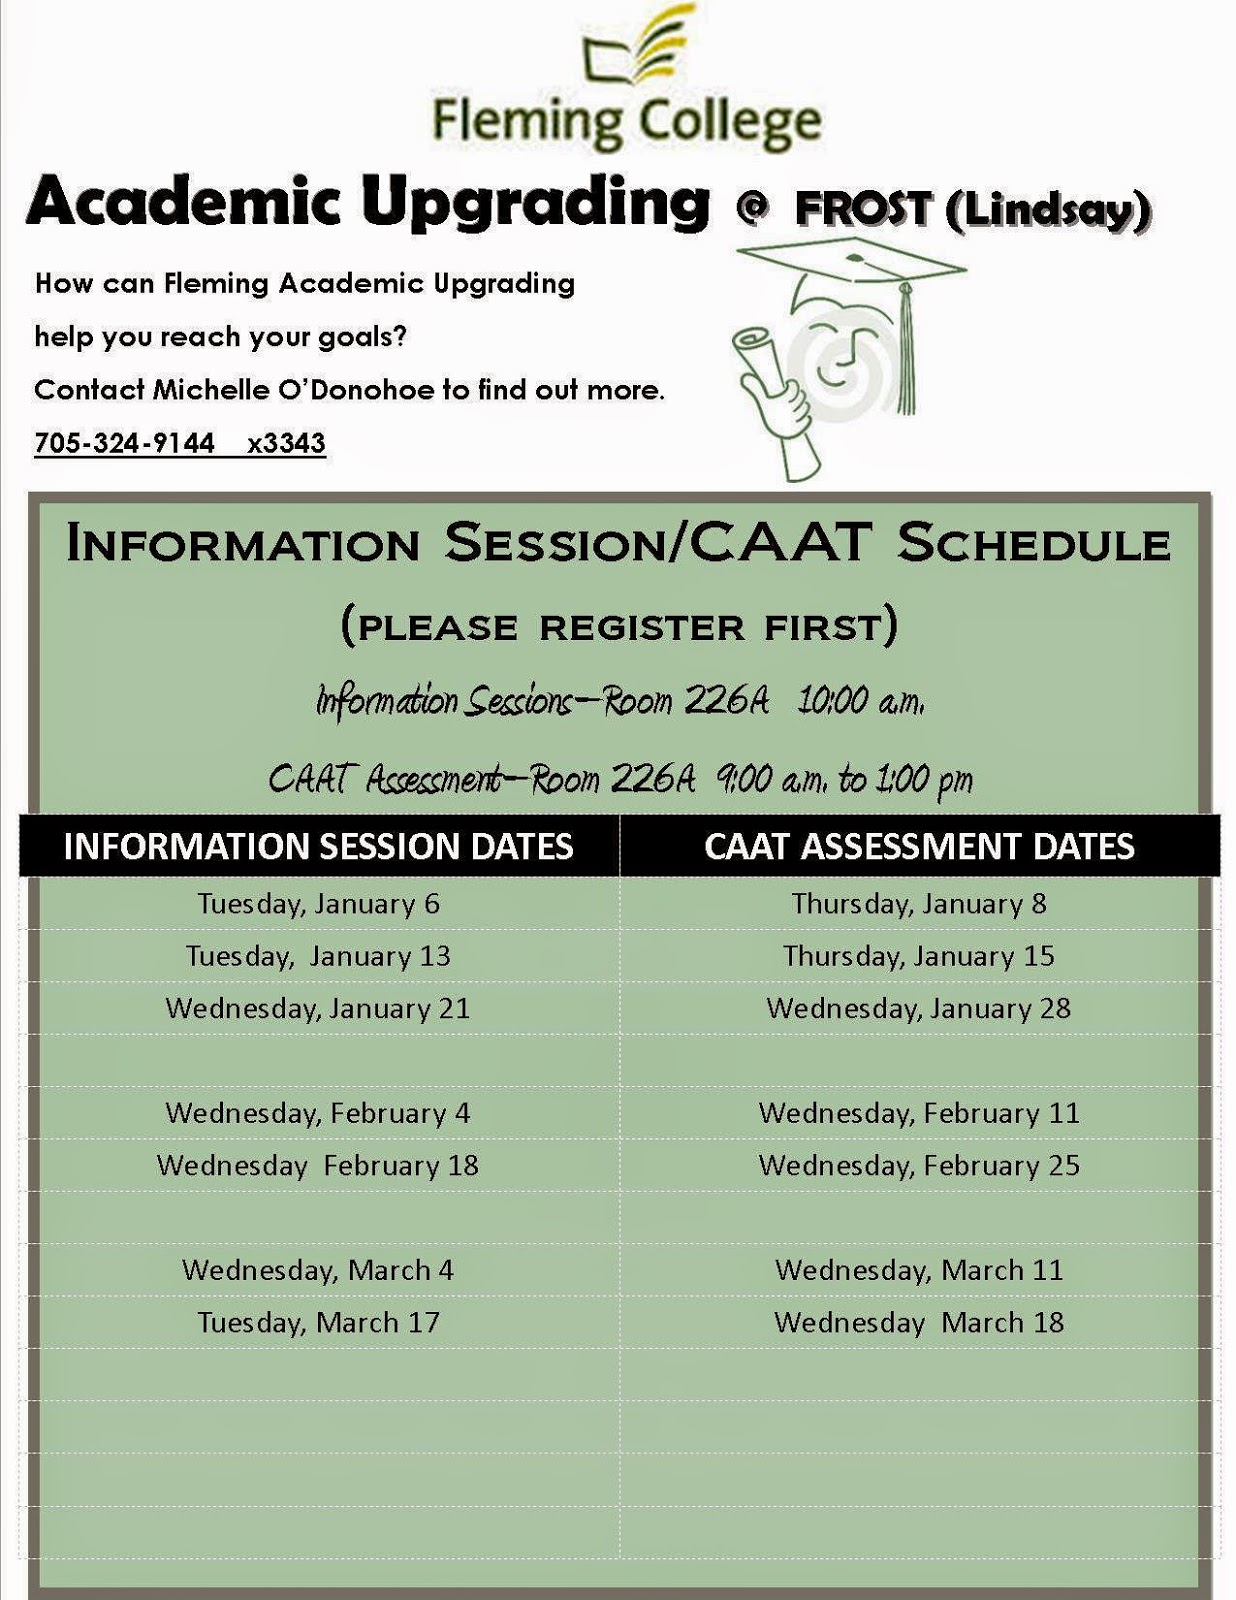 image   2015 Free Kawartha Lakes Academic Upgrading SSFC Frost Campus Info Session and CAAT Schedule